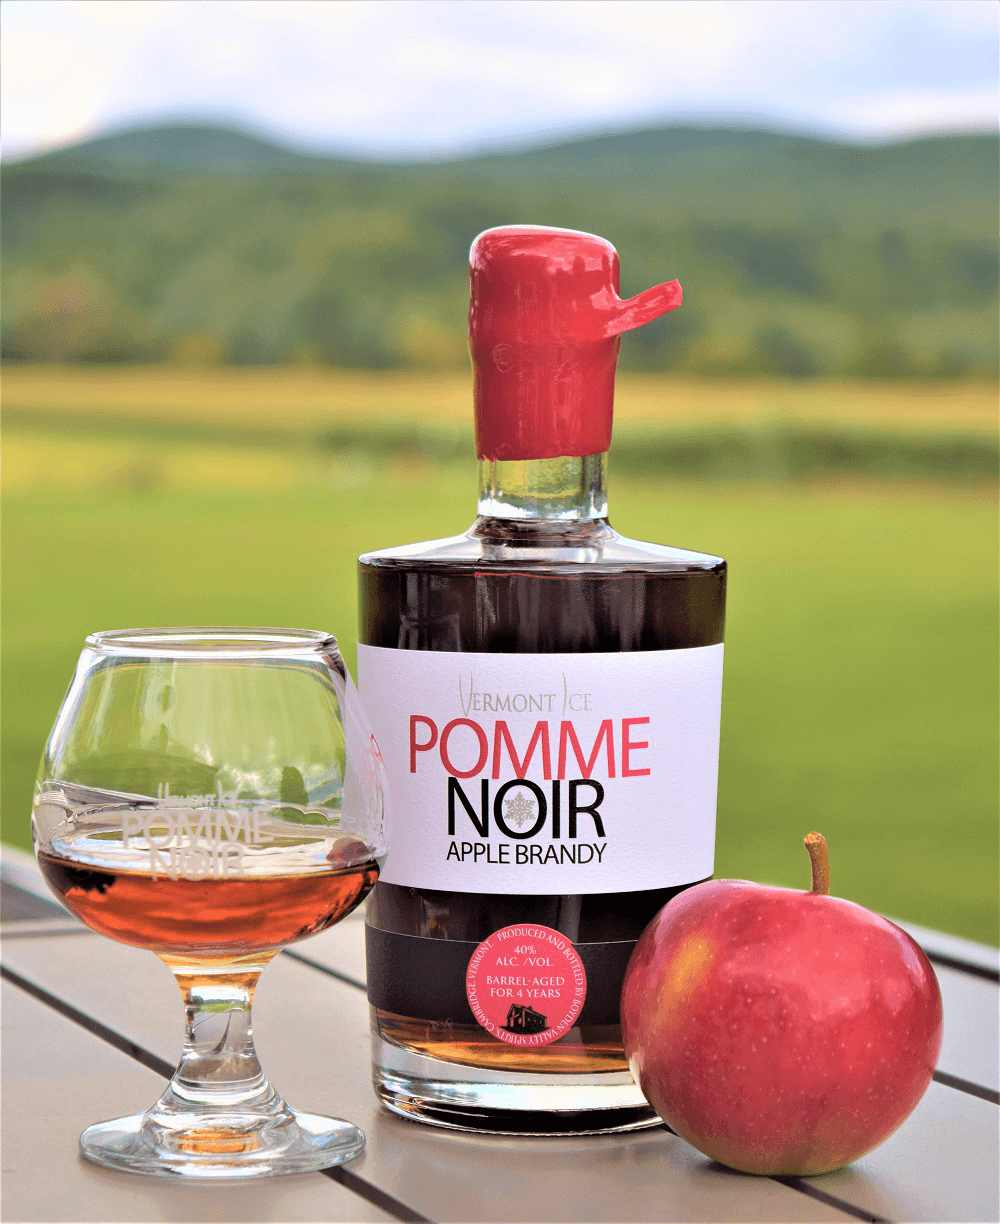 Image of Pomme Noir apple brandy